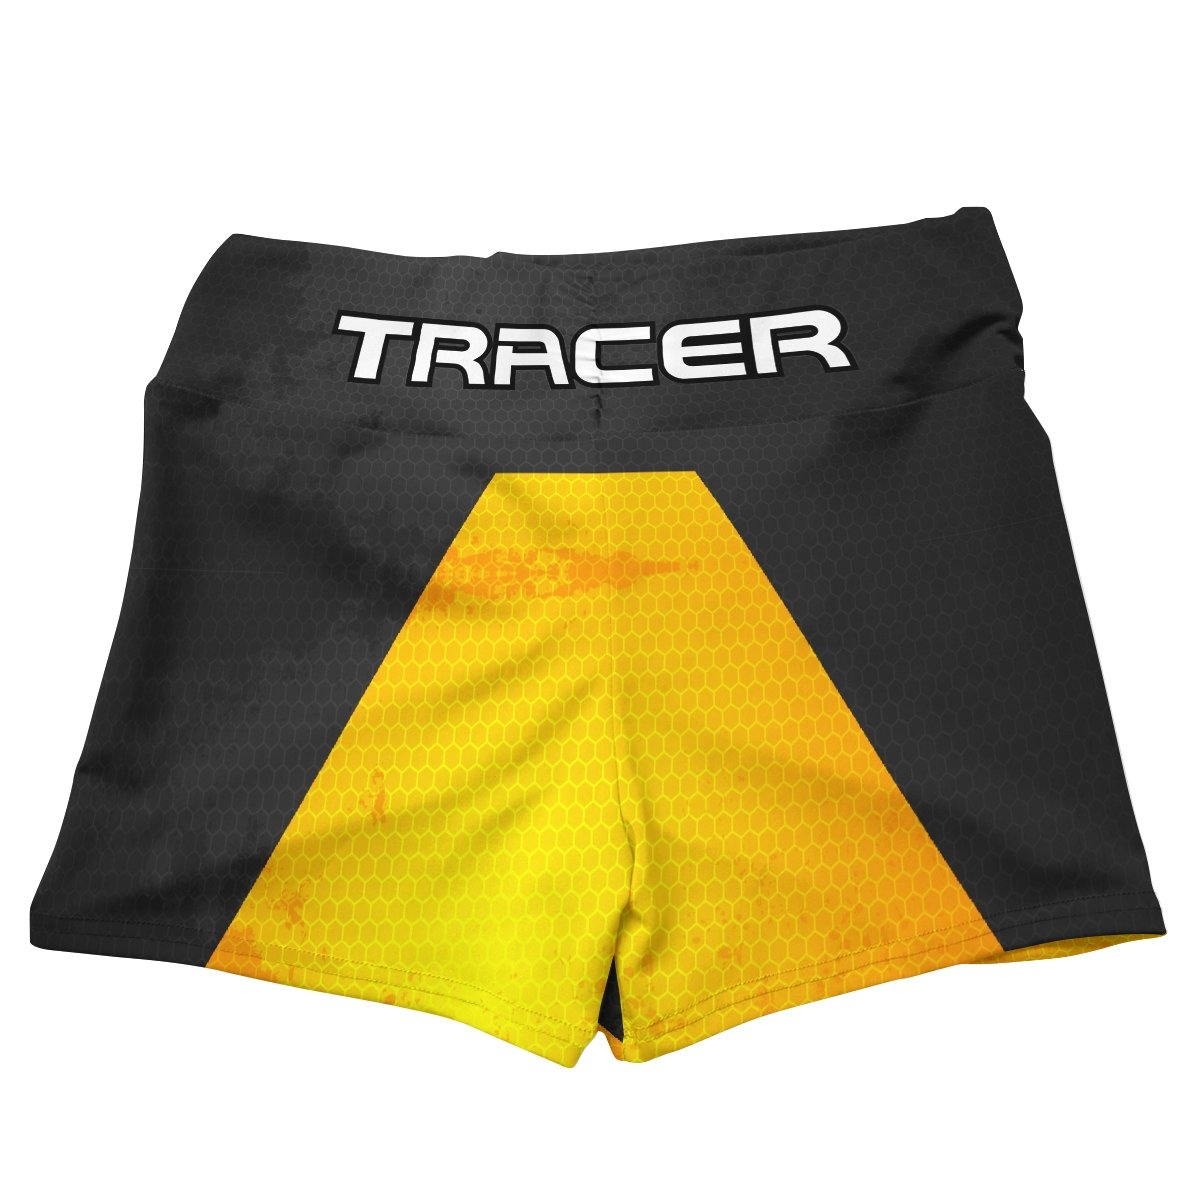 tracer summer active wear set 631438 - Anime Swimsuits